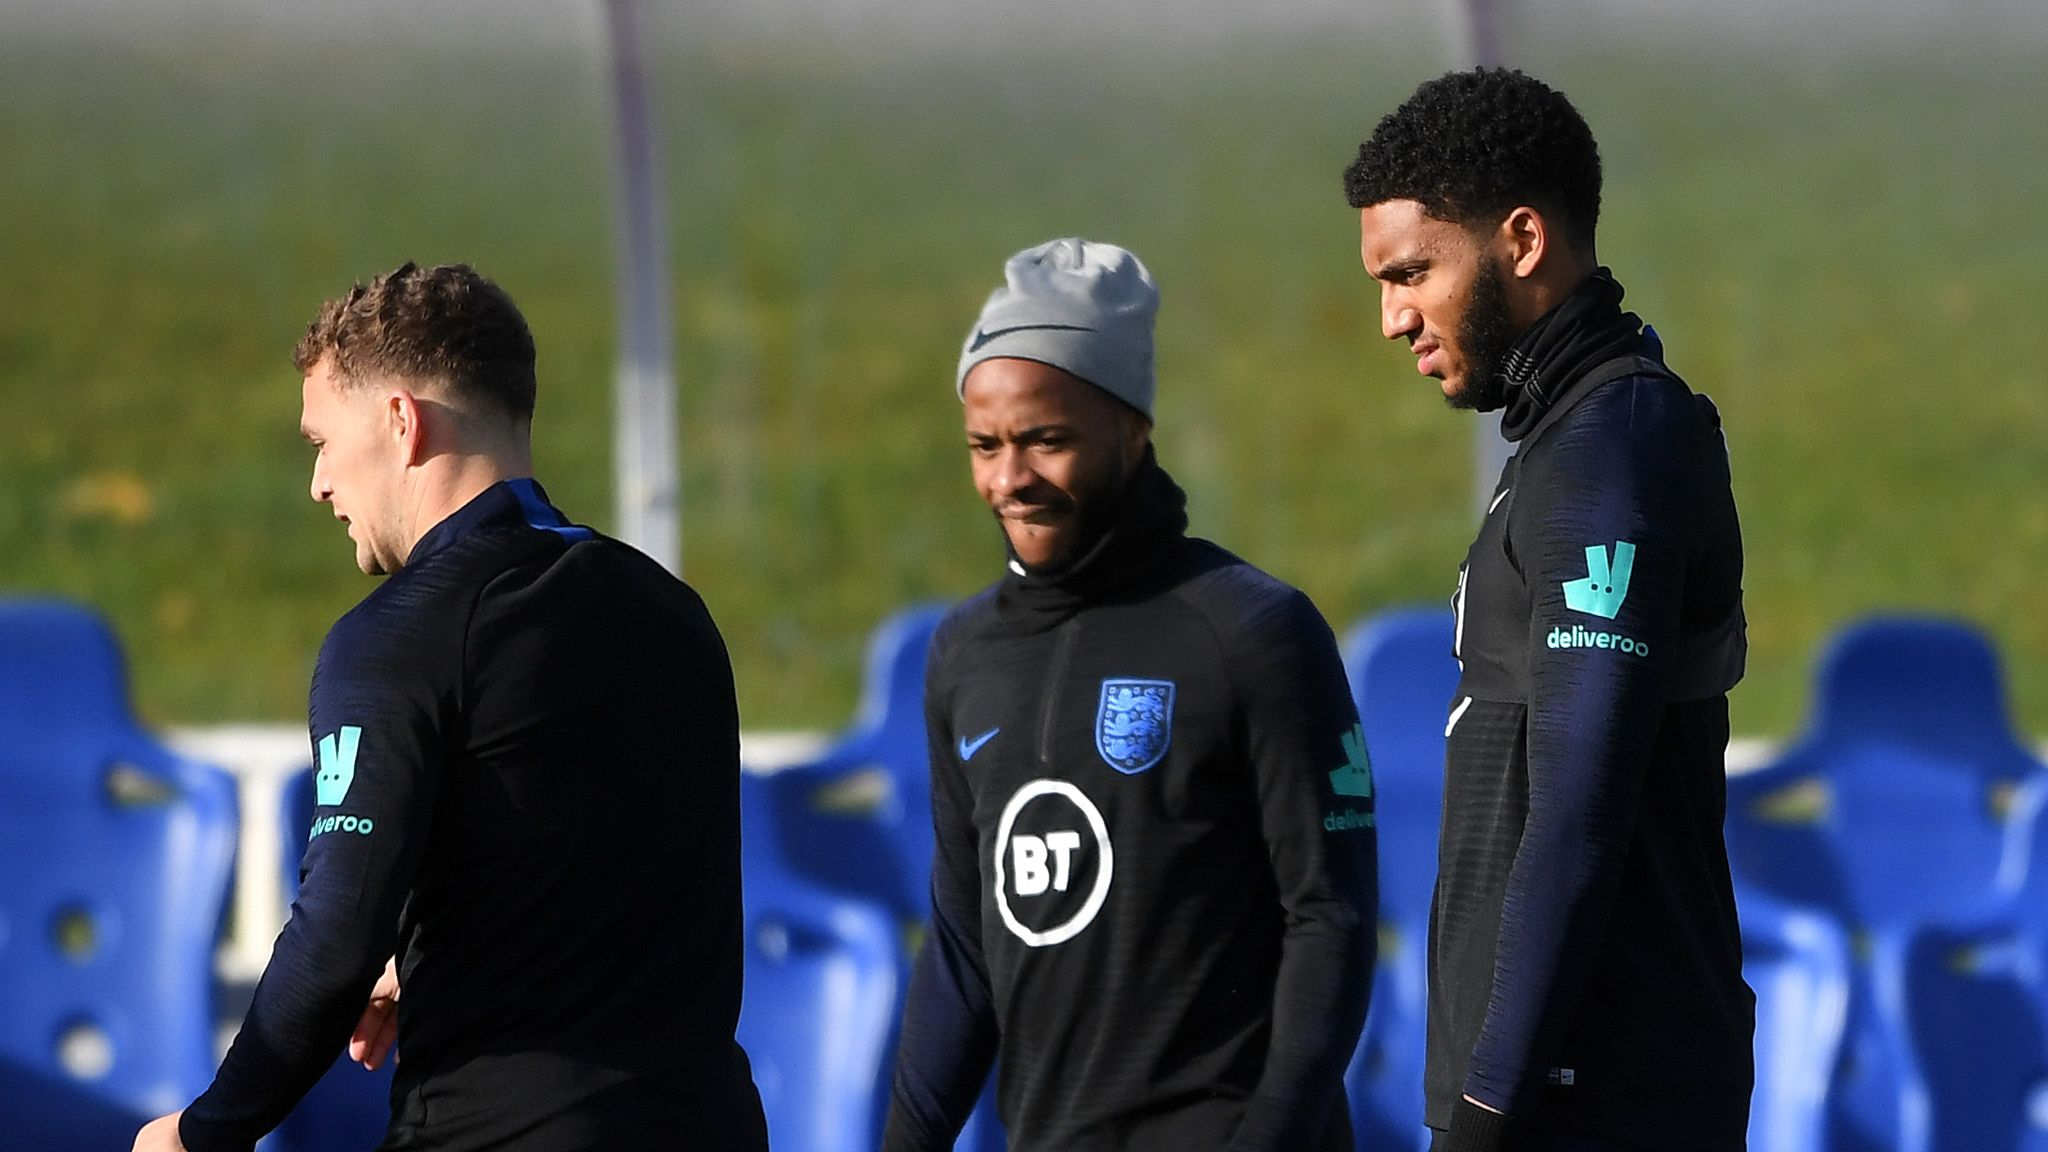 Raheem Sterling and Joe Gomez train together for England after altercation